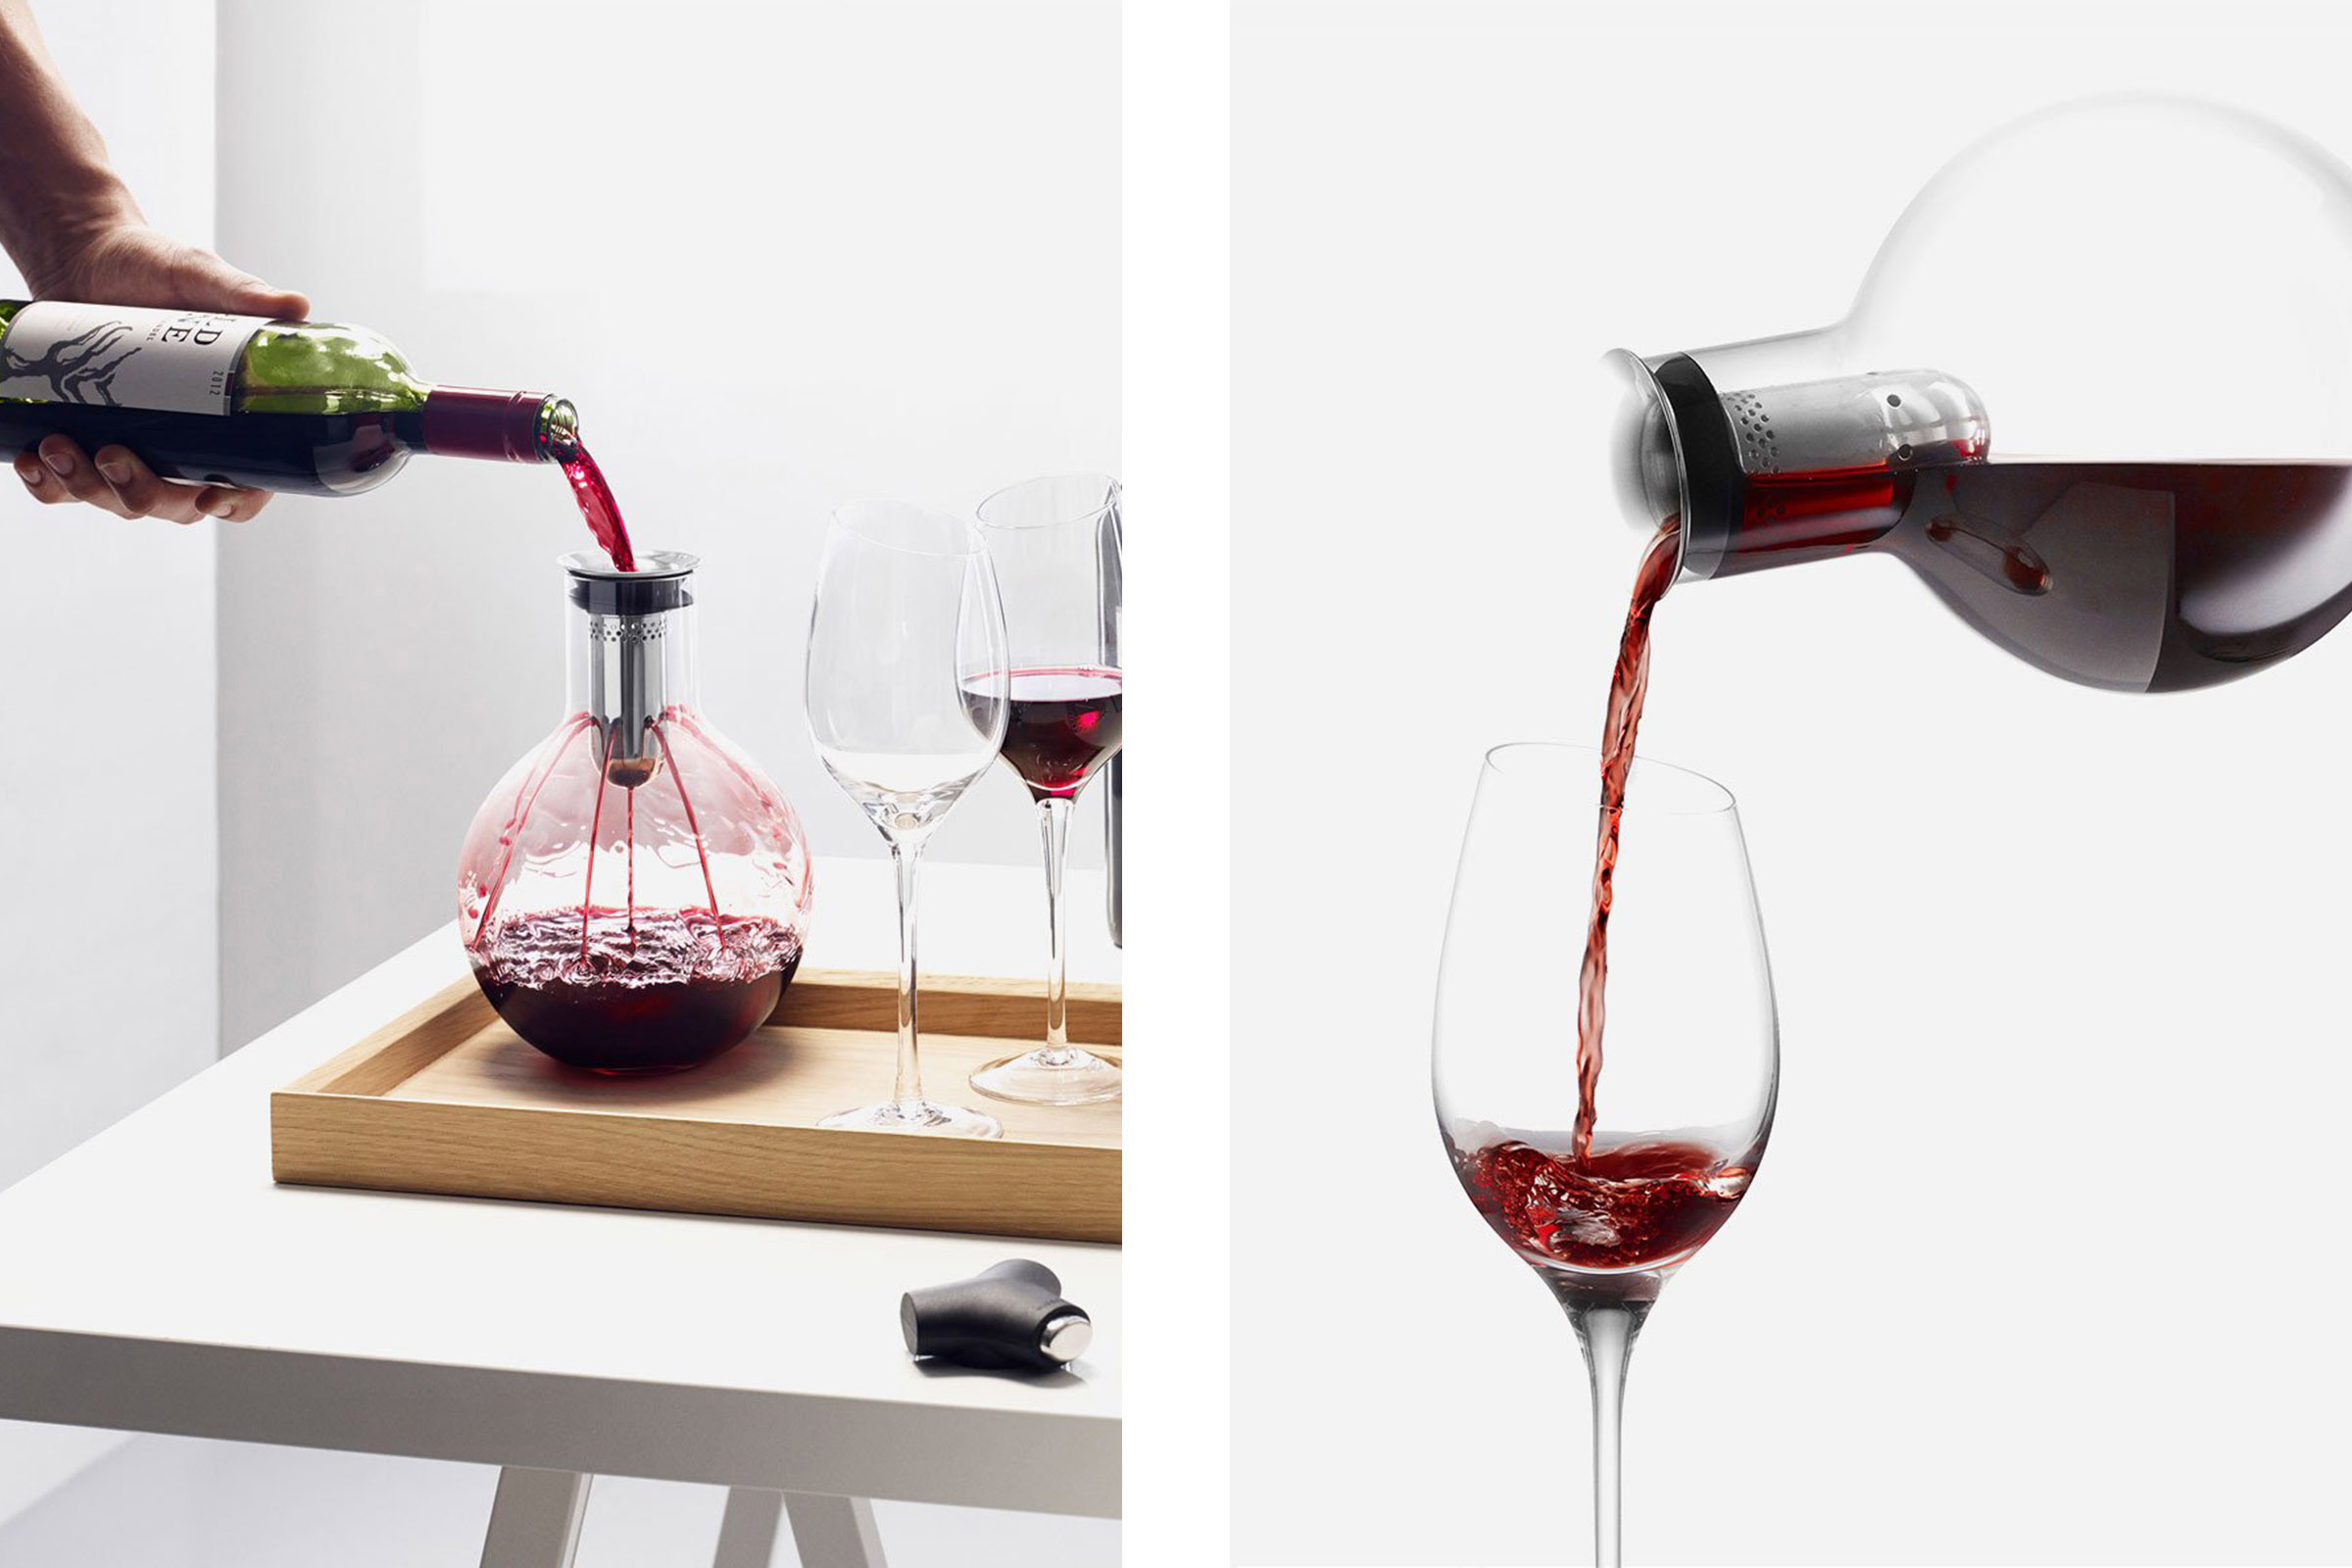 Top Picks For Christmas - Decanter Carafe Wine Aerator